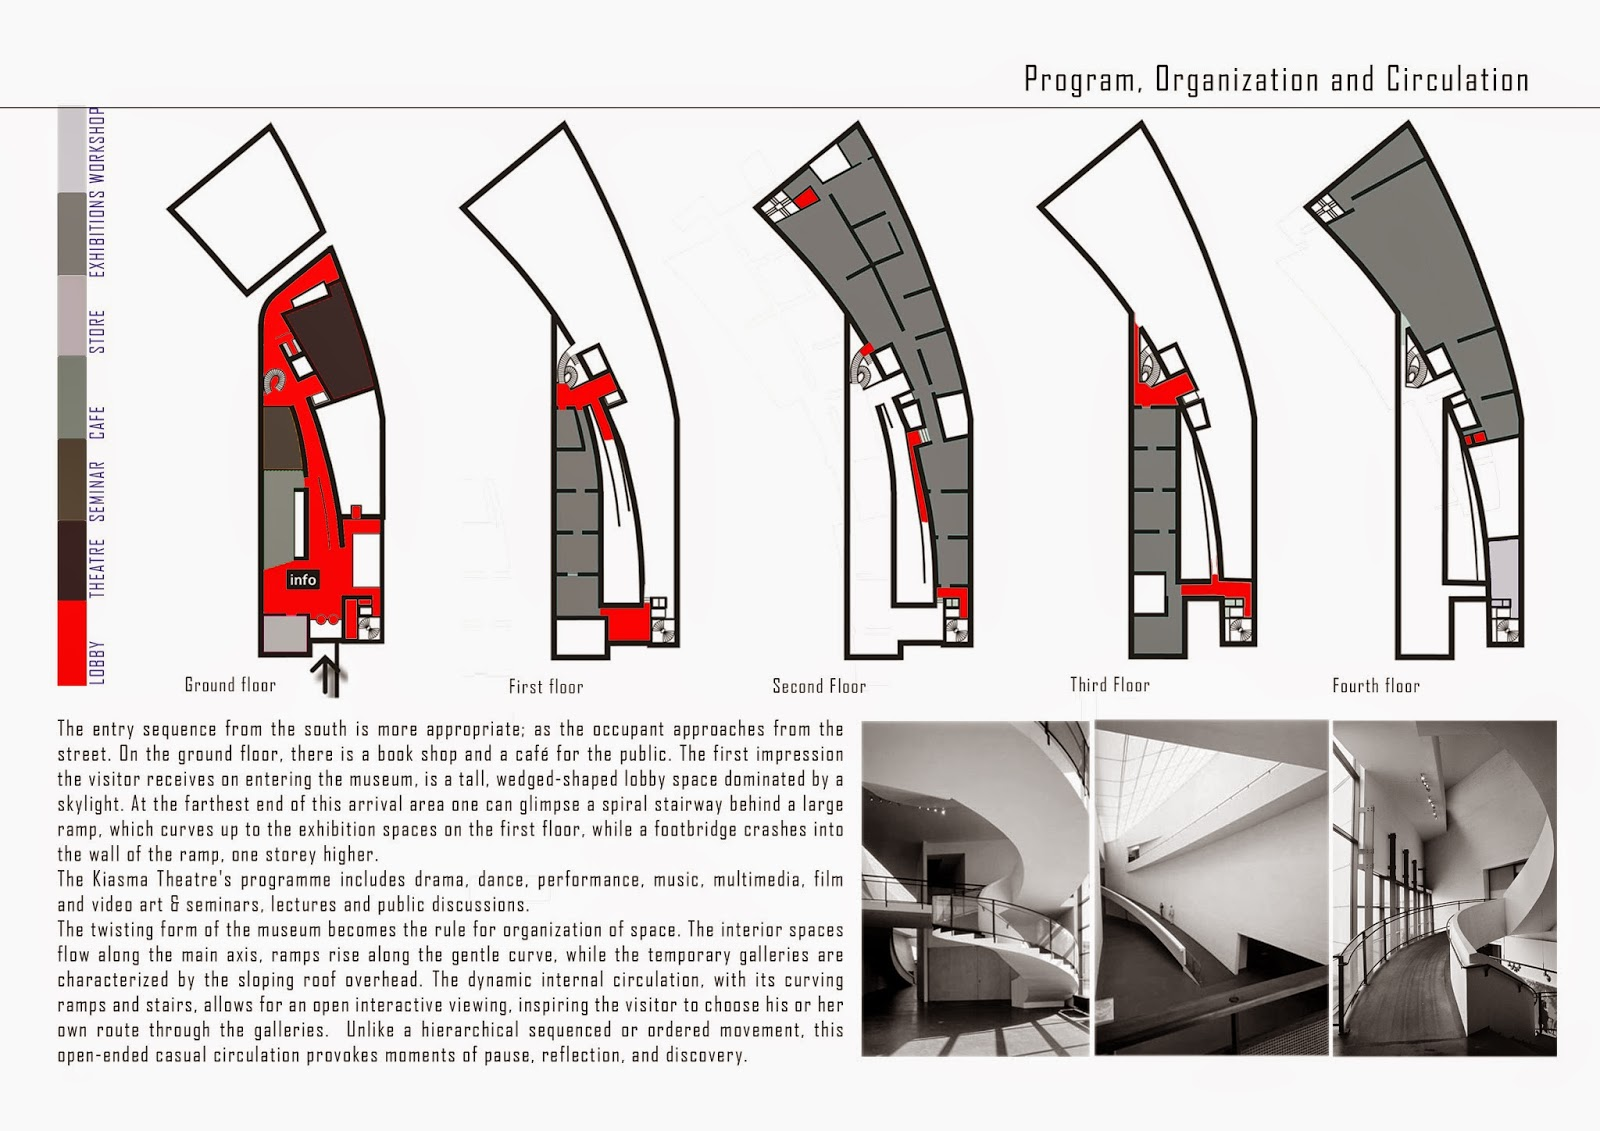 Steven Holl Research Papers - Academia.edu